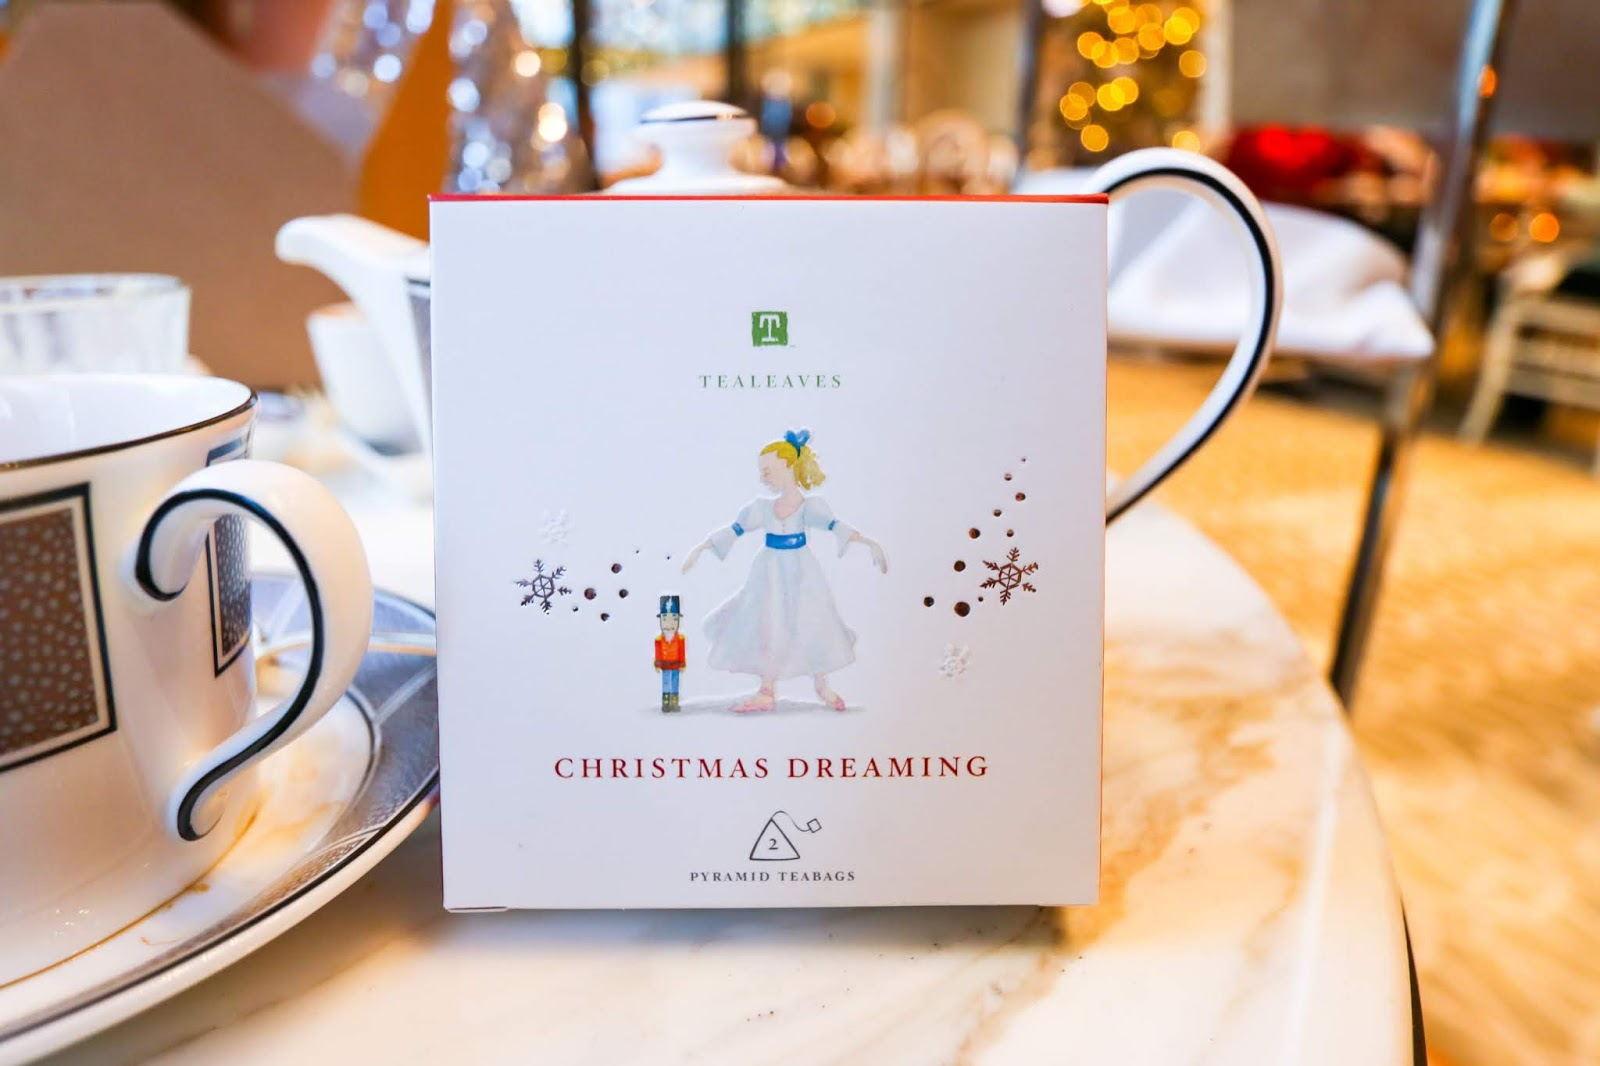 Chicago Eats: Holiday Tea at The Langham